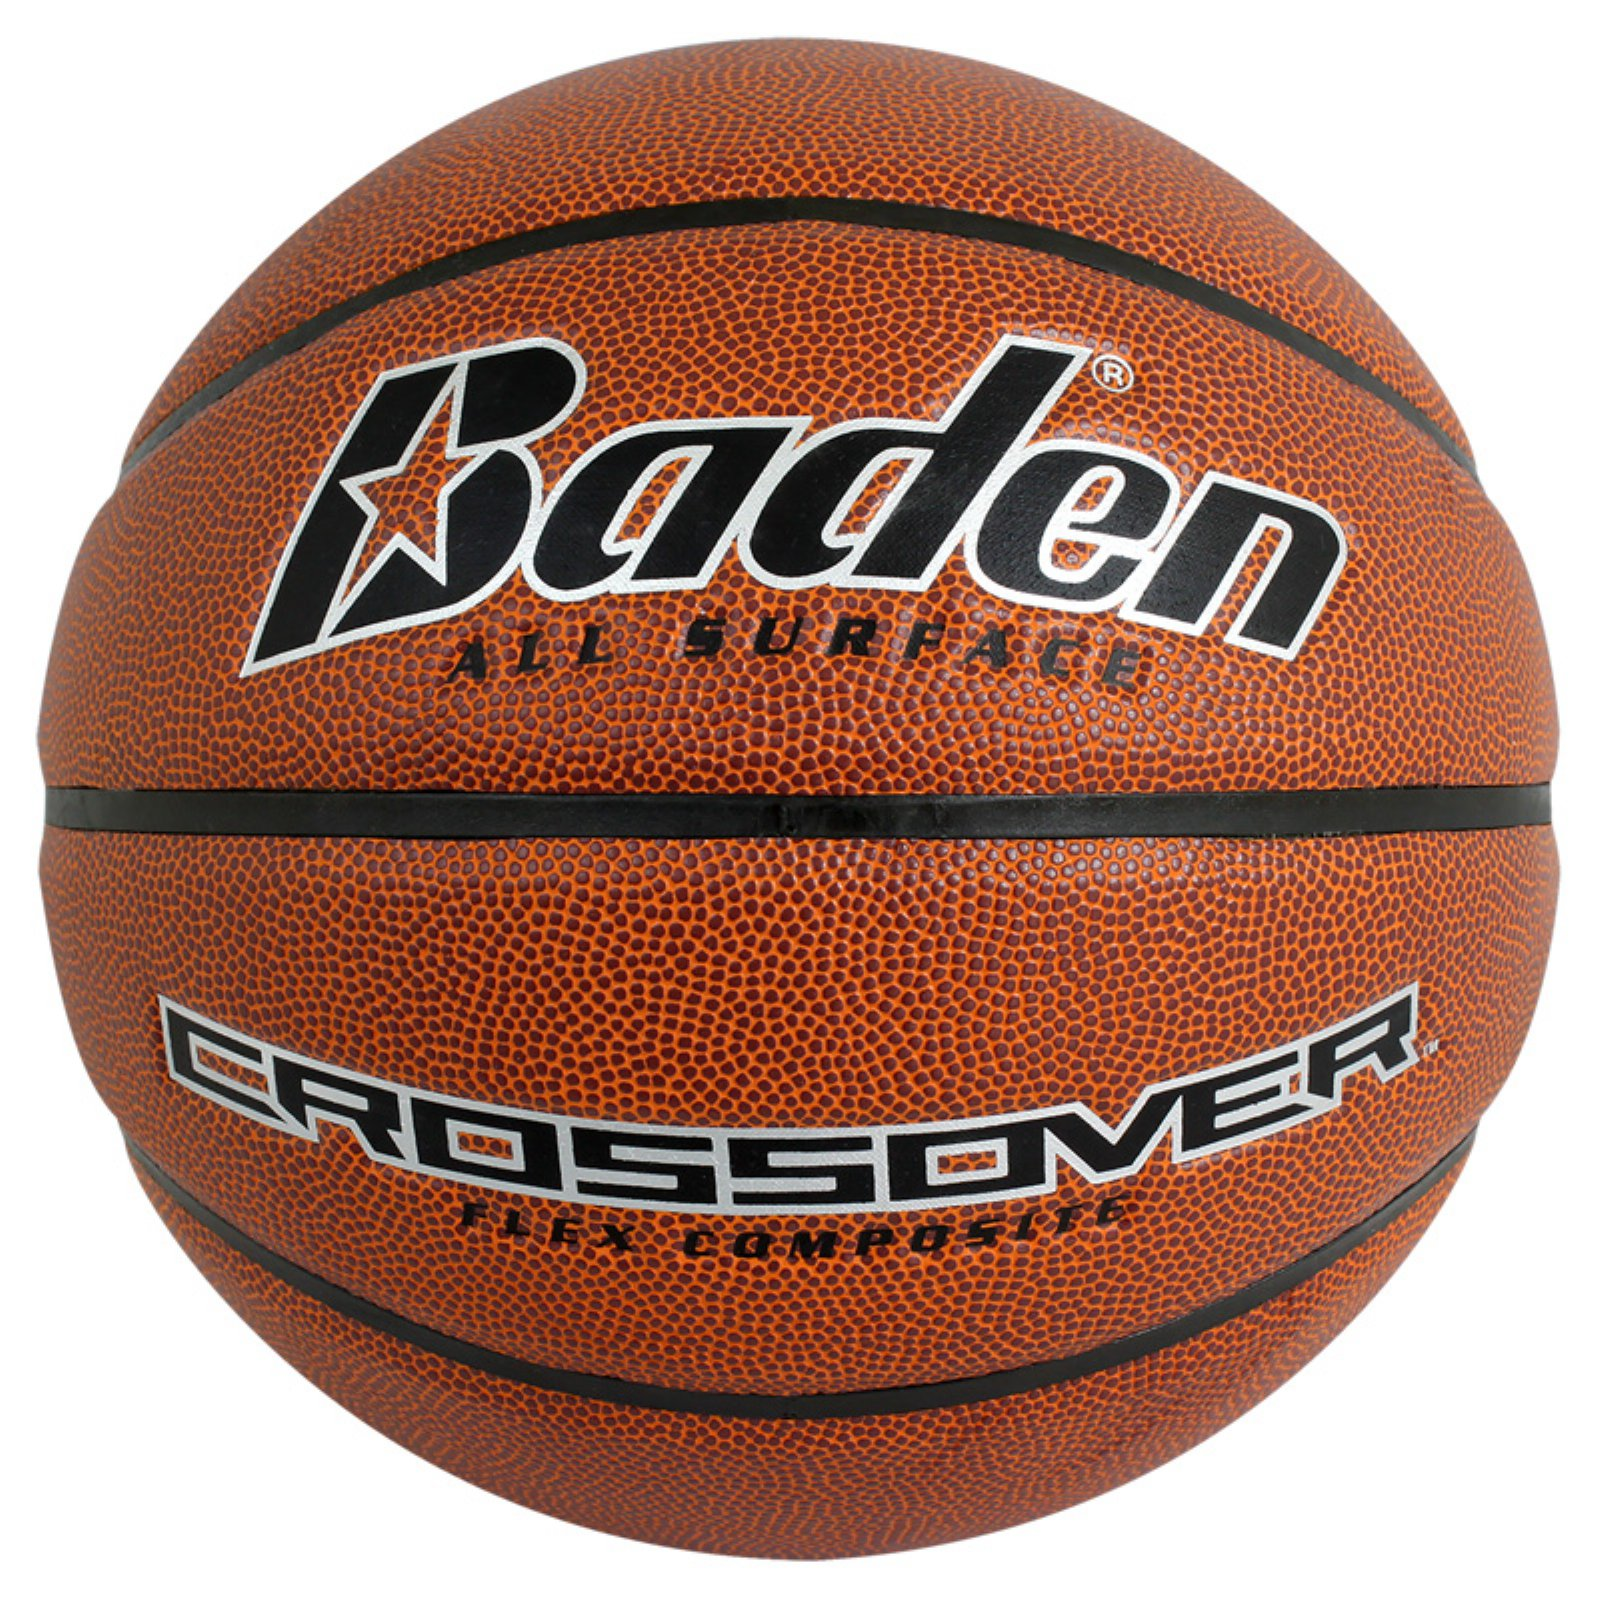 Baden Crossover All-Surface Composite Basketball